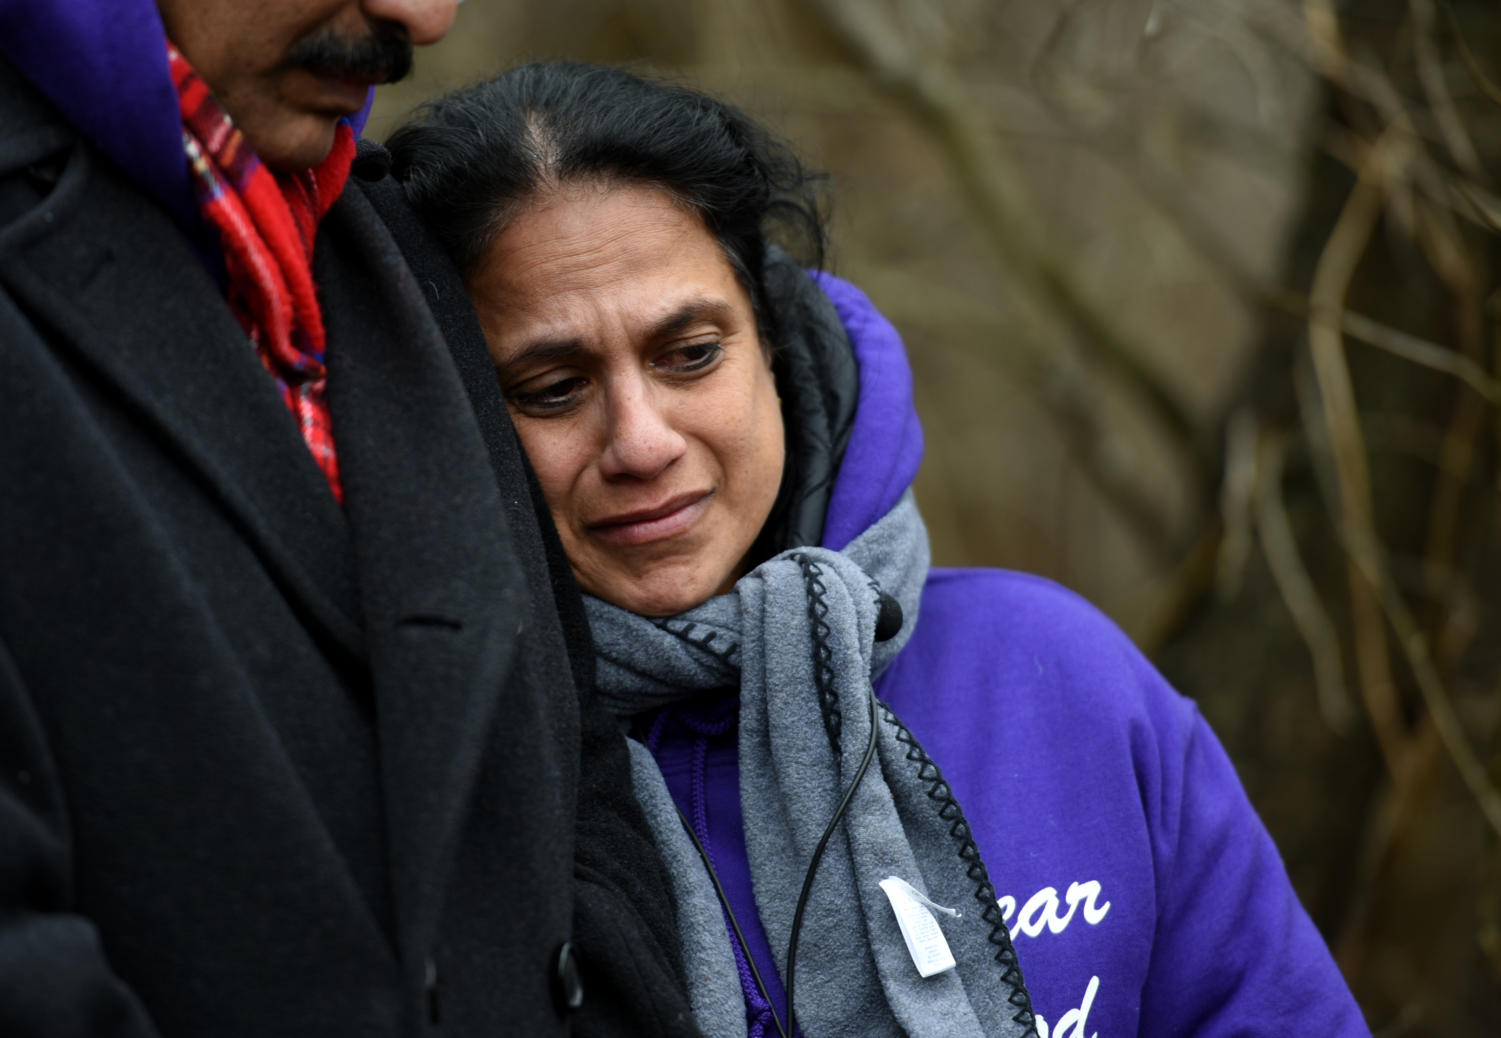 Lovely Varughese, mother of Pravin Varughese, morns the death of her son, Friday, Feb. 16, 2018, in the woods near East Main Street and Giant City Road where her son was found dead in 2014. (Mary Newman | @MaryNewmanDE)